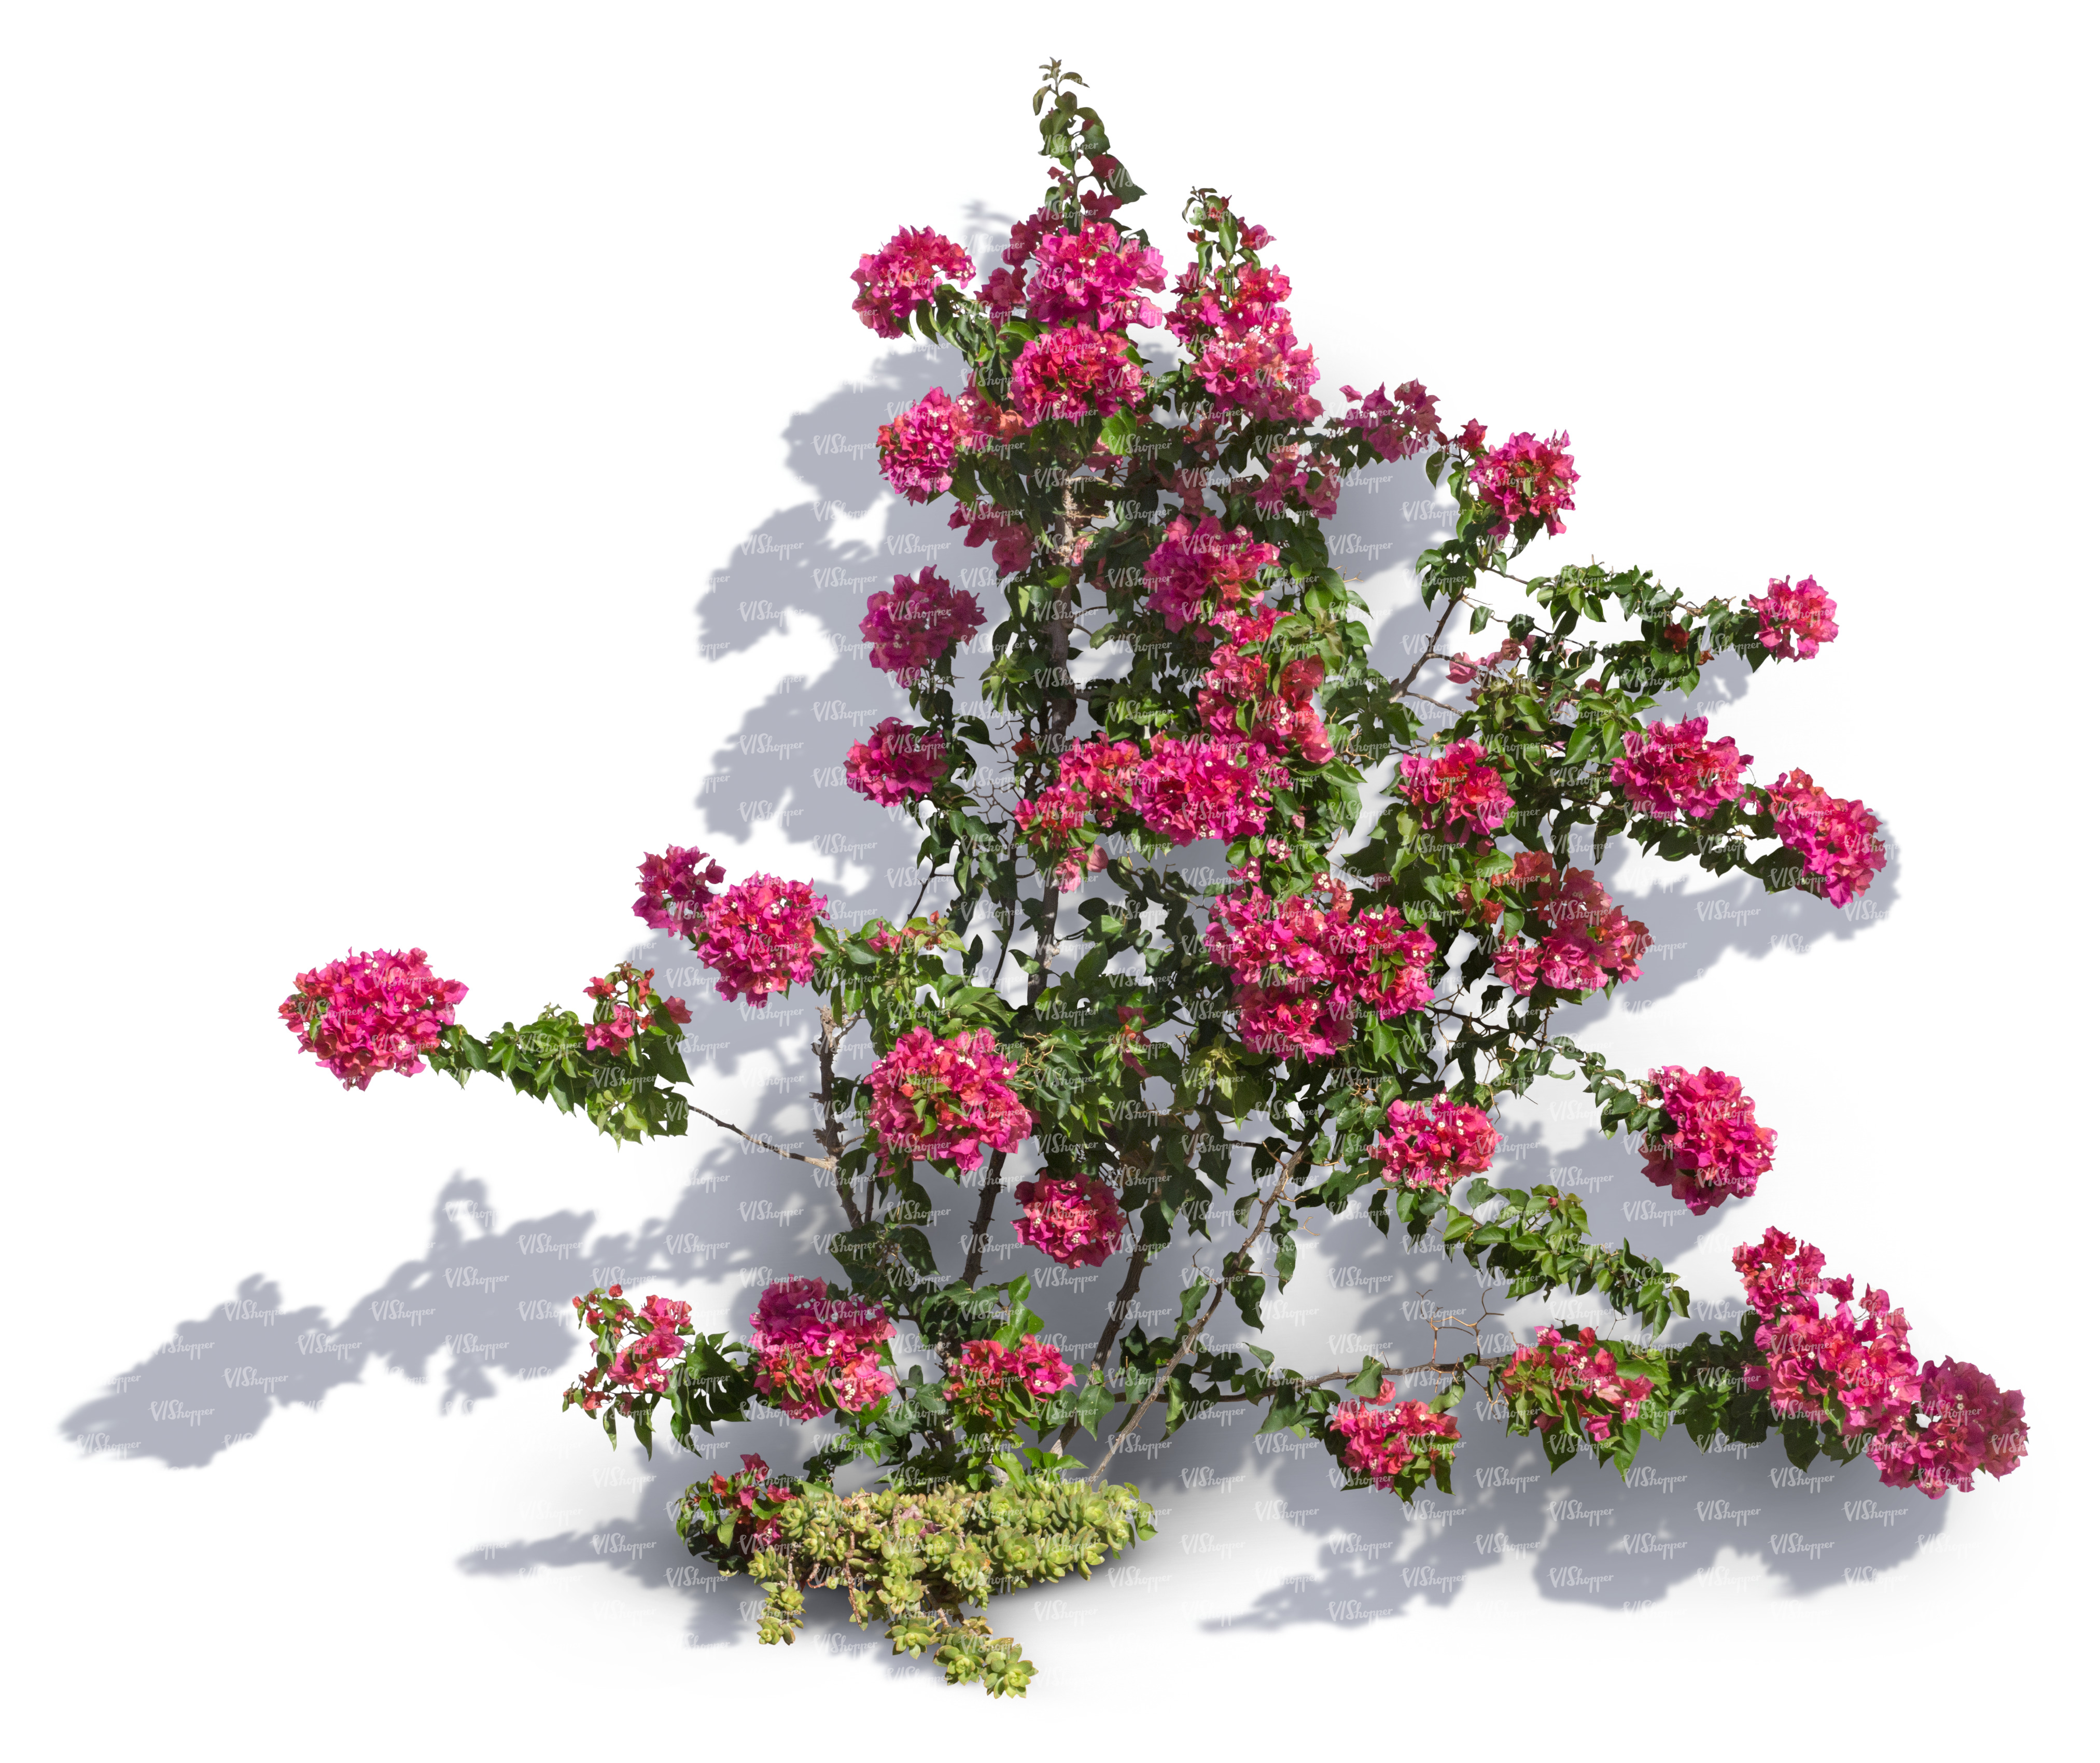 Cut Out Climbing Plant With Pink Blossoms Cut Out Trees And Plants